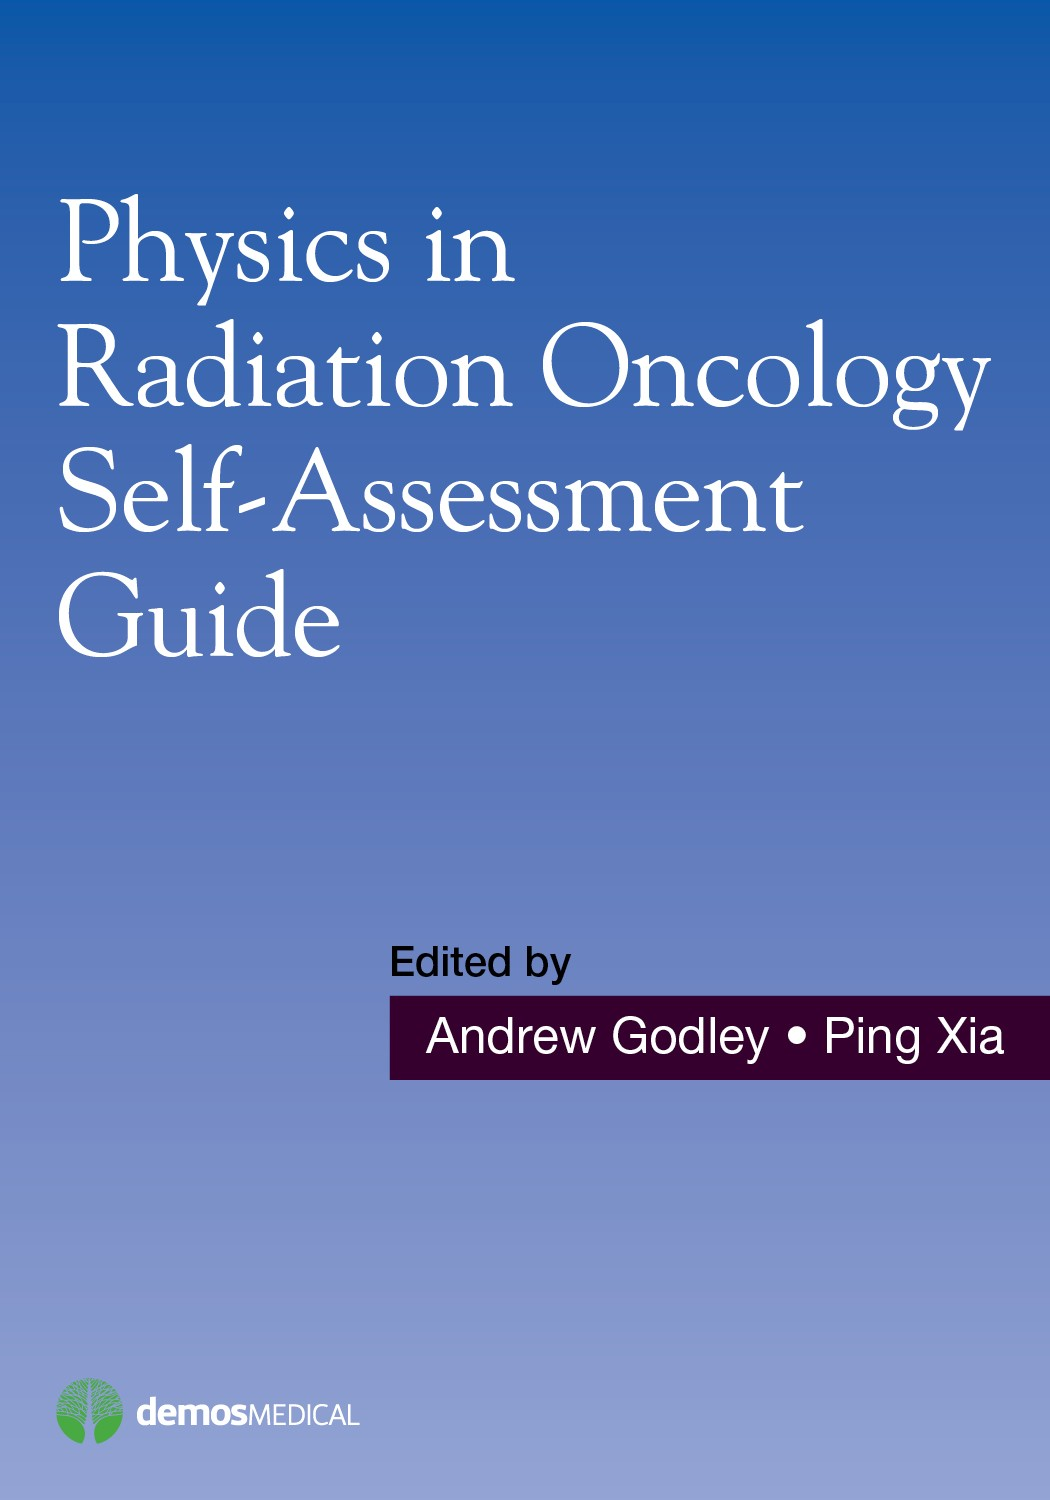 Physics in Radiation Oncology Self-Assessment Guide